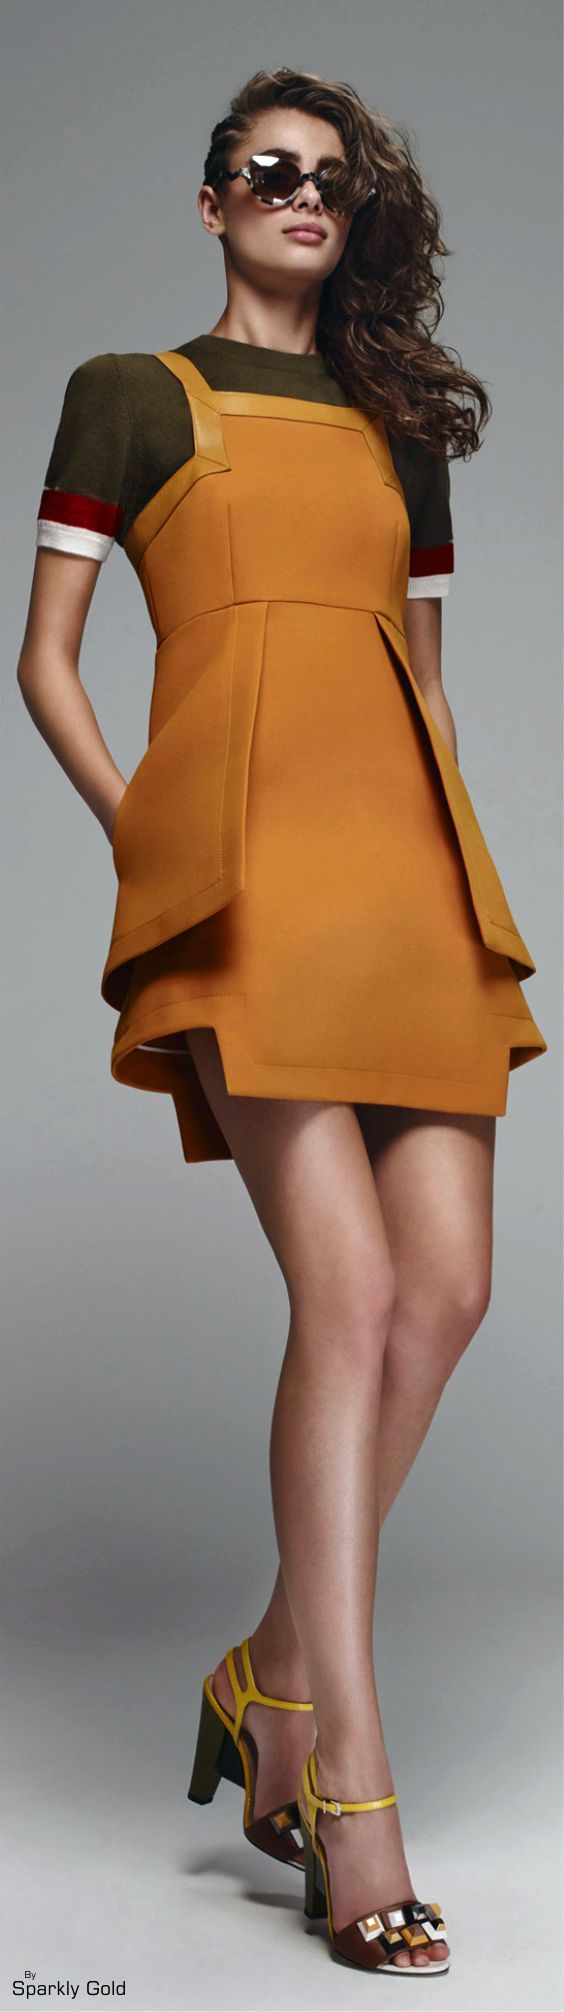 Fendi Resort 2016 women fashion outfit clothing style apparel @roressclothes closet ideas